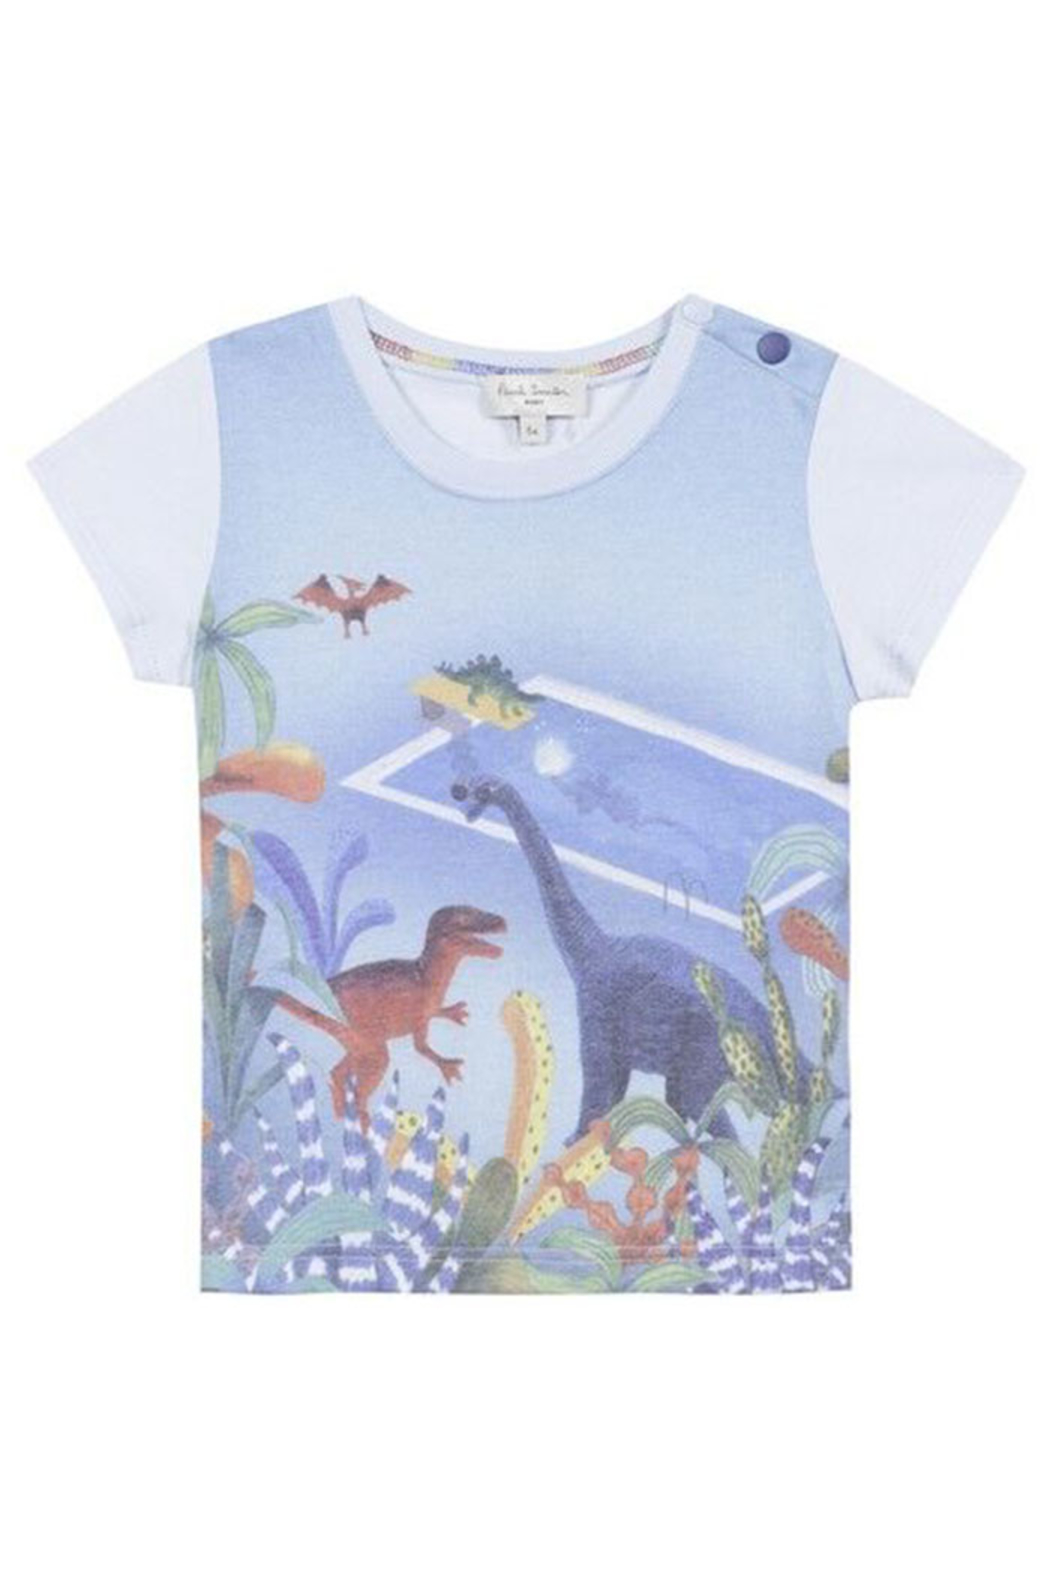 Paul Smith Neeson Dinosaur Shirt - Main Image